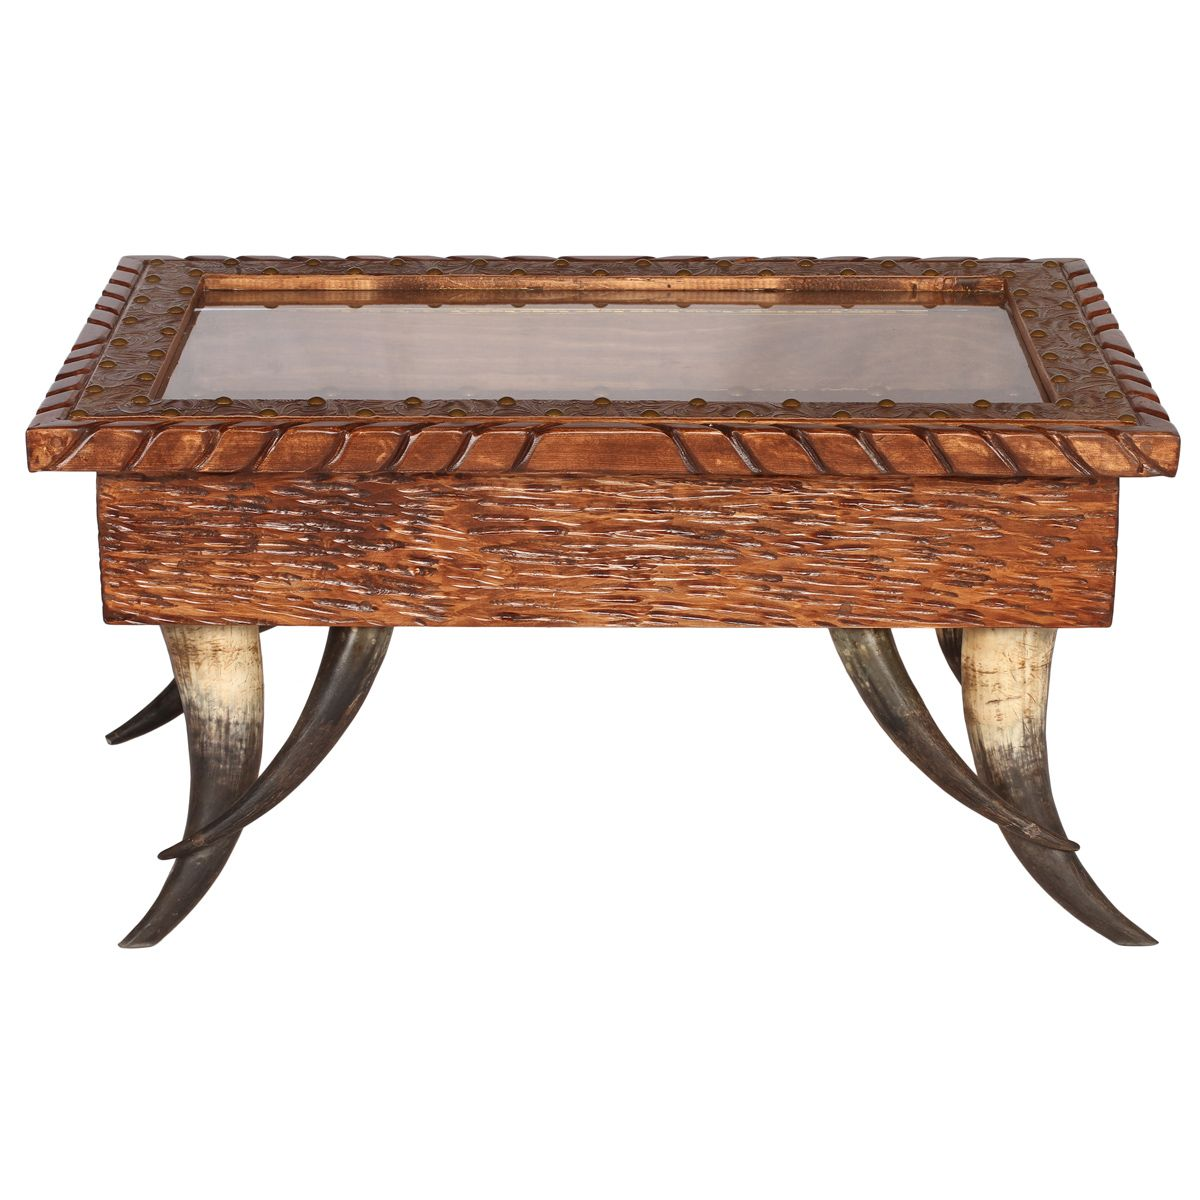 Horn Collection Shadow Box Coffee Table - Small